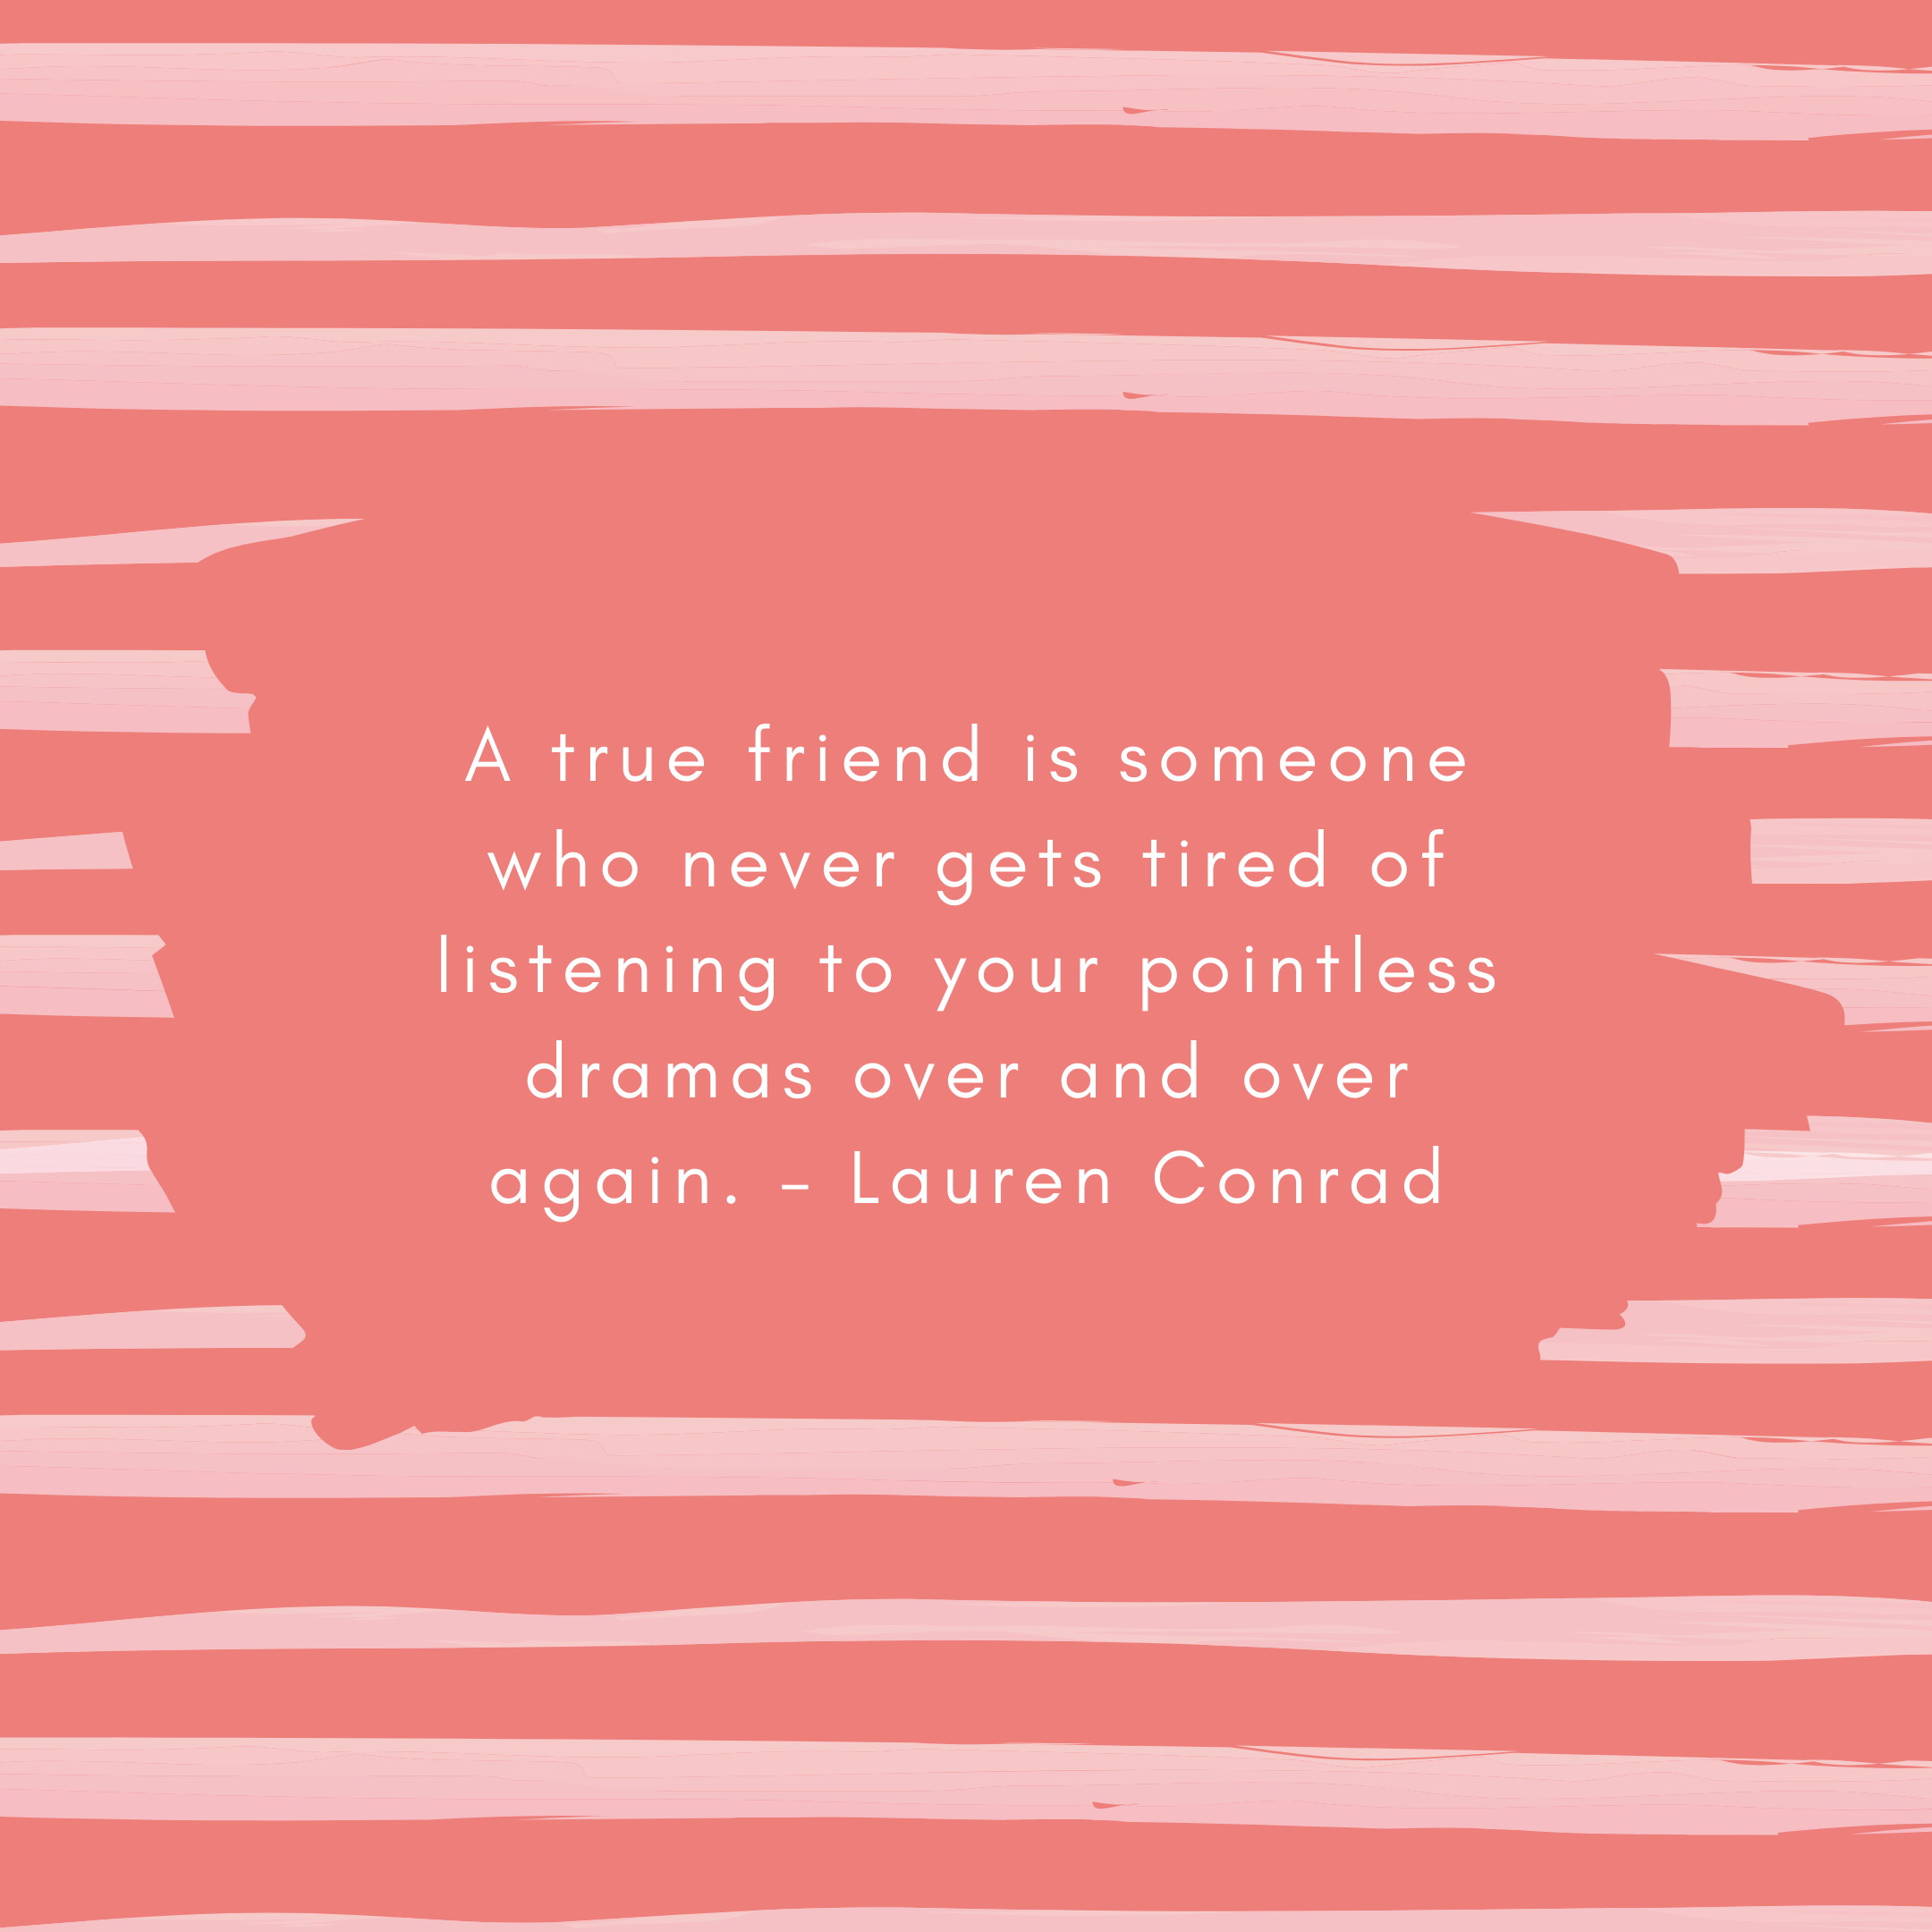 A true friend is someone who never gets tired of listening to your pointless dramas over and over again. – Lauren Conrad